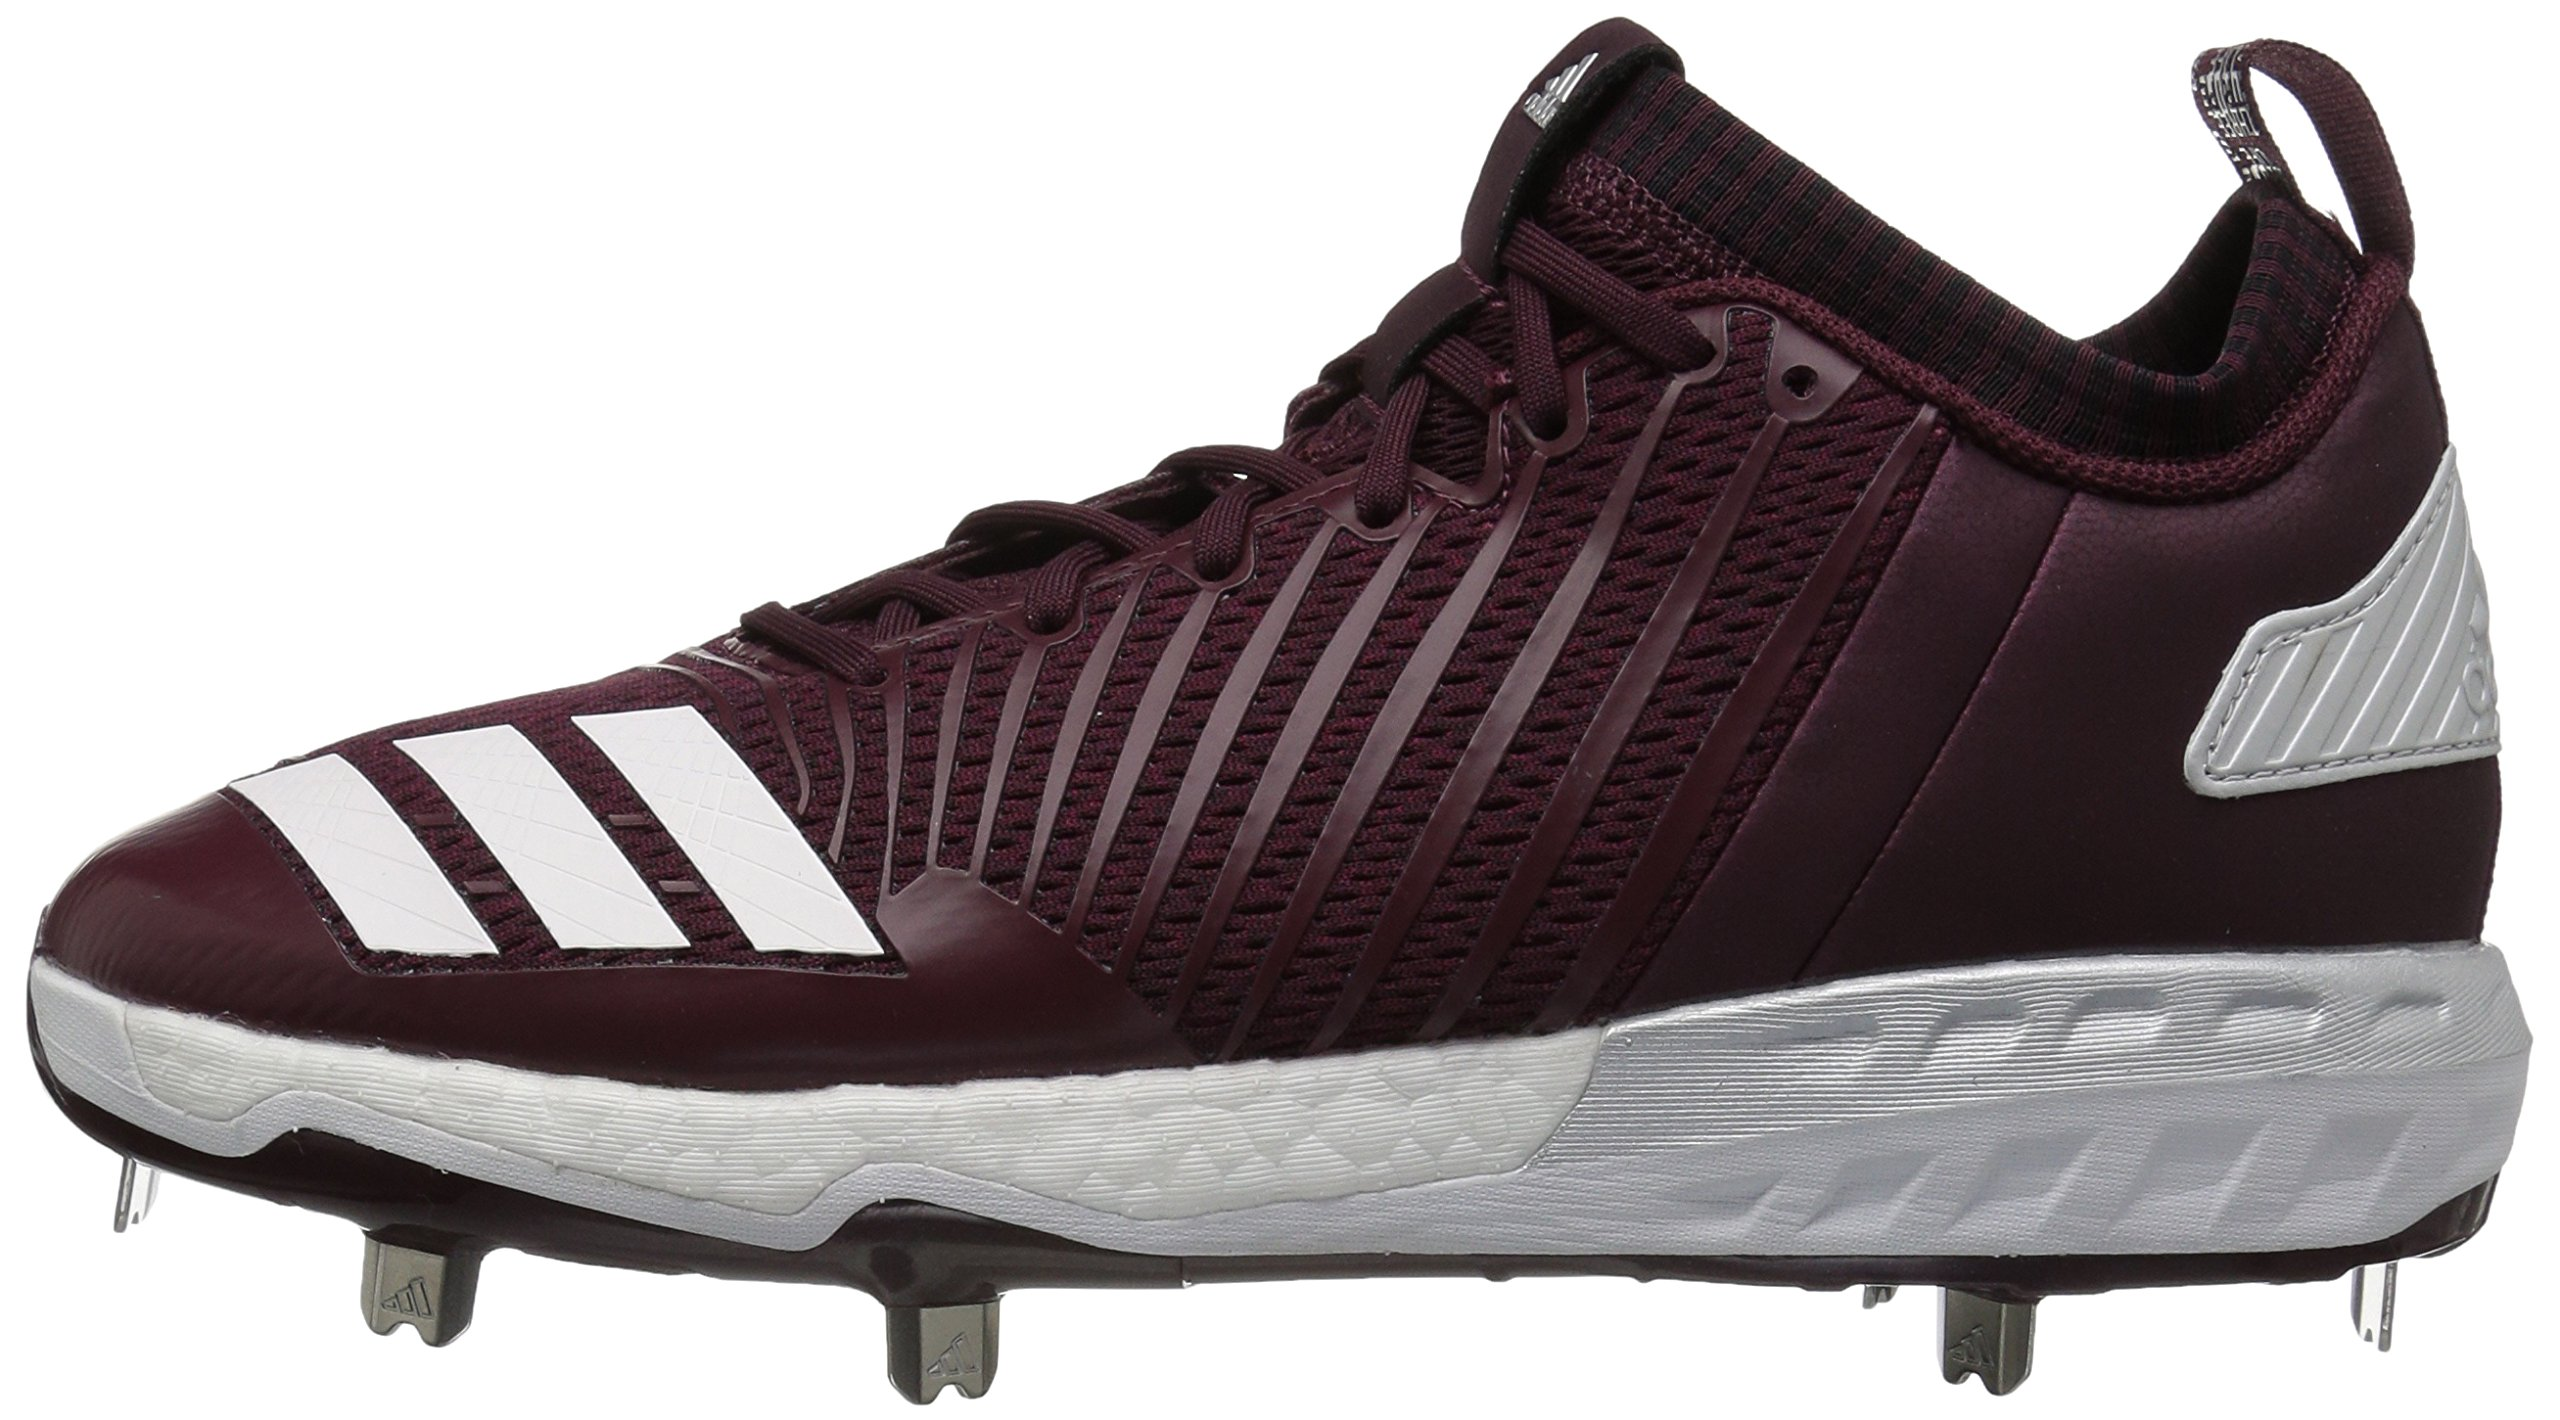 adidas Men's Freak X Carbon Mid Baseball Shoe, Maroon/White/Metallic Silver, 7.5 Medium US by adidas (Image #5)